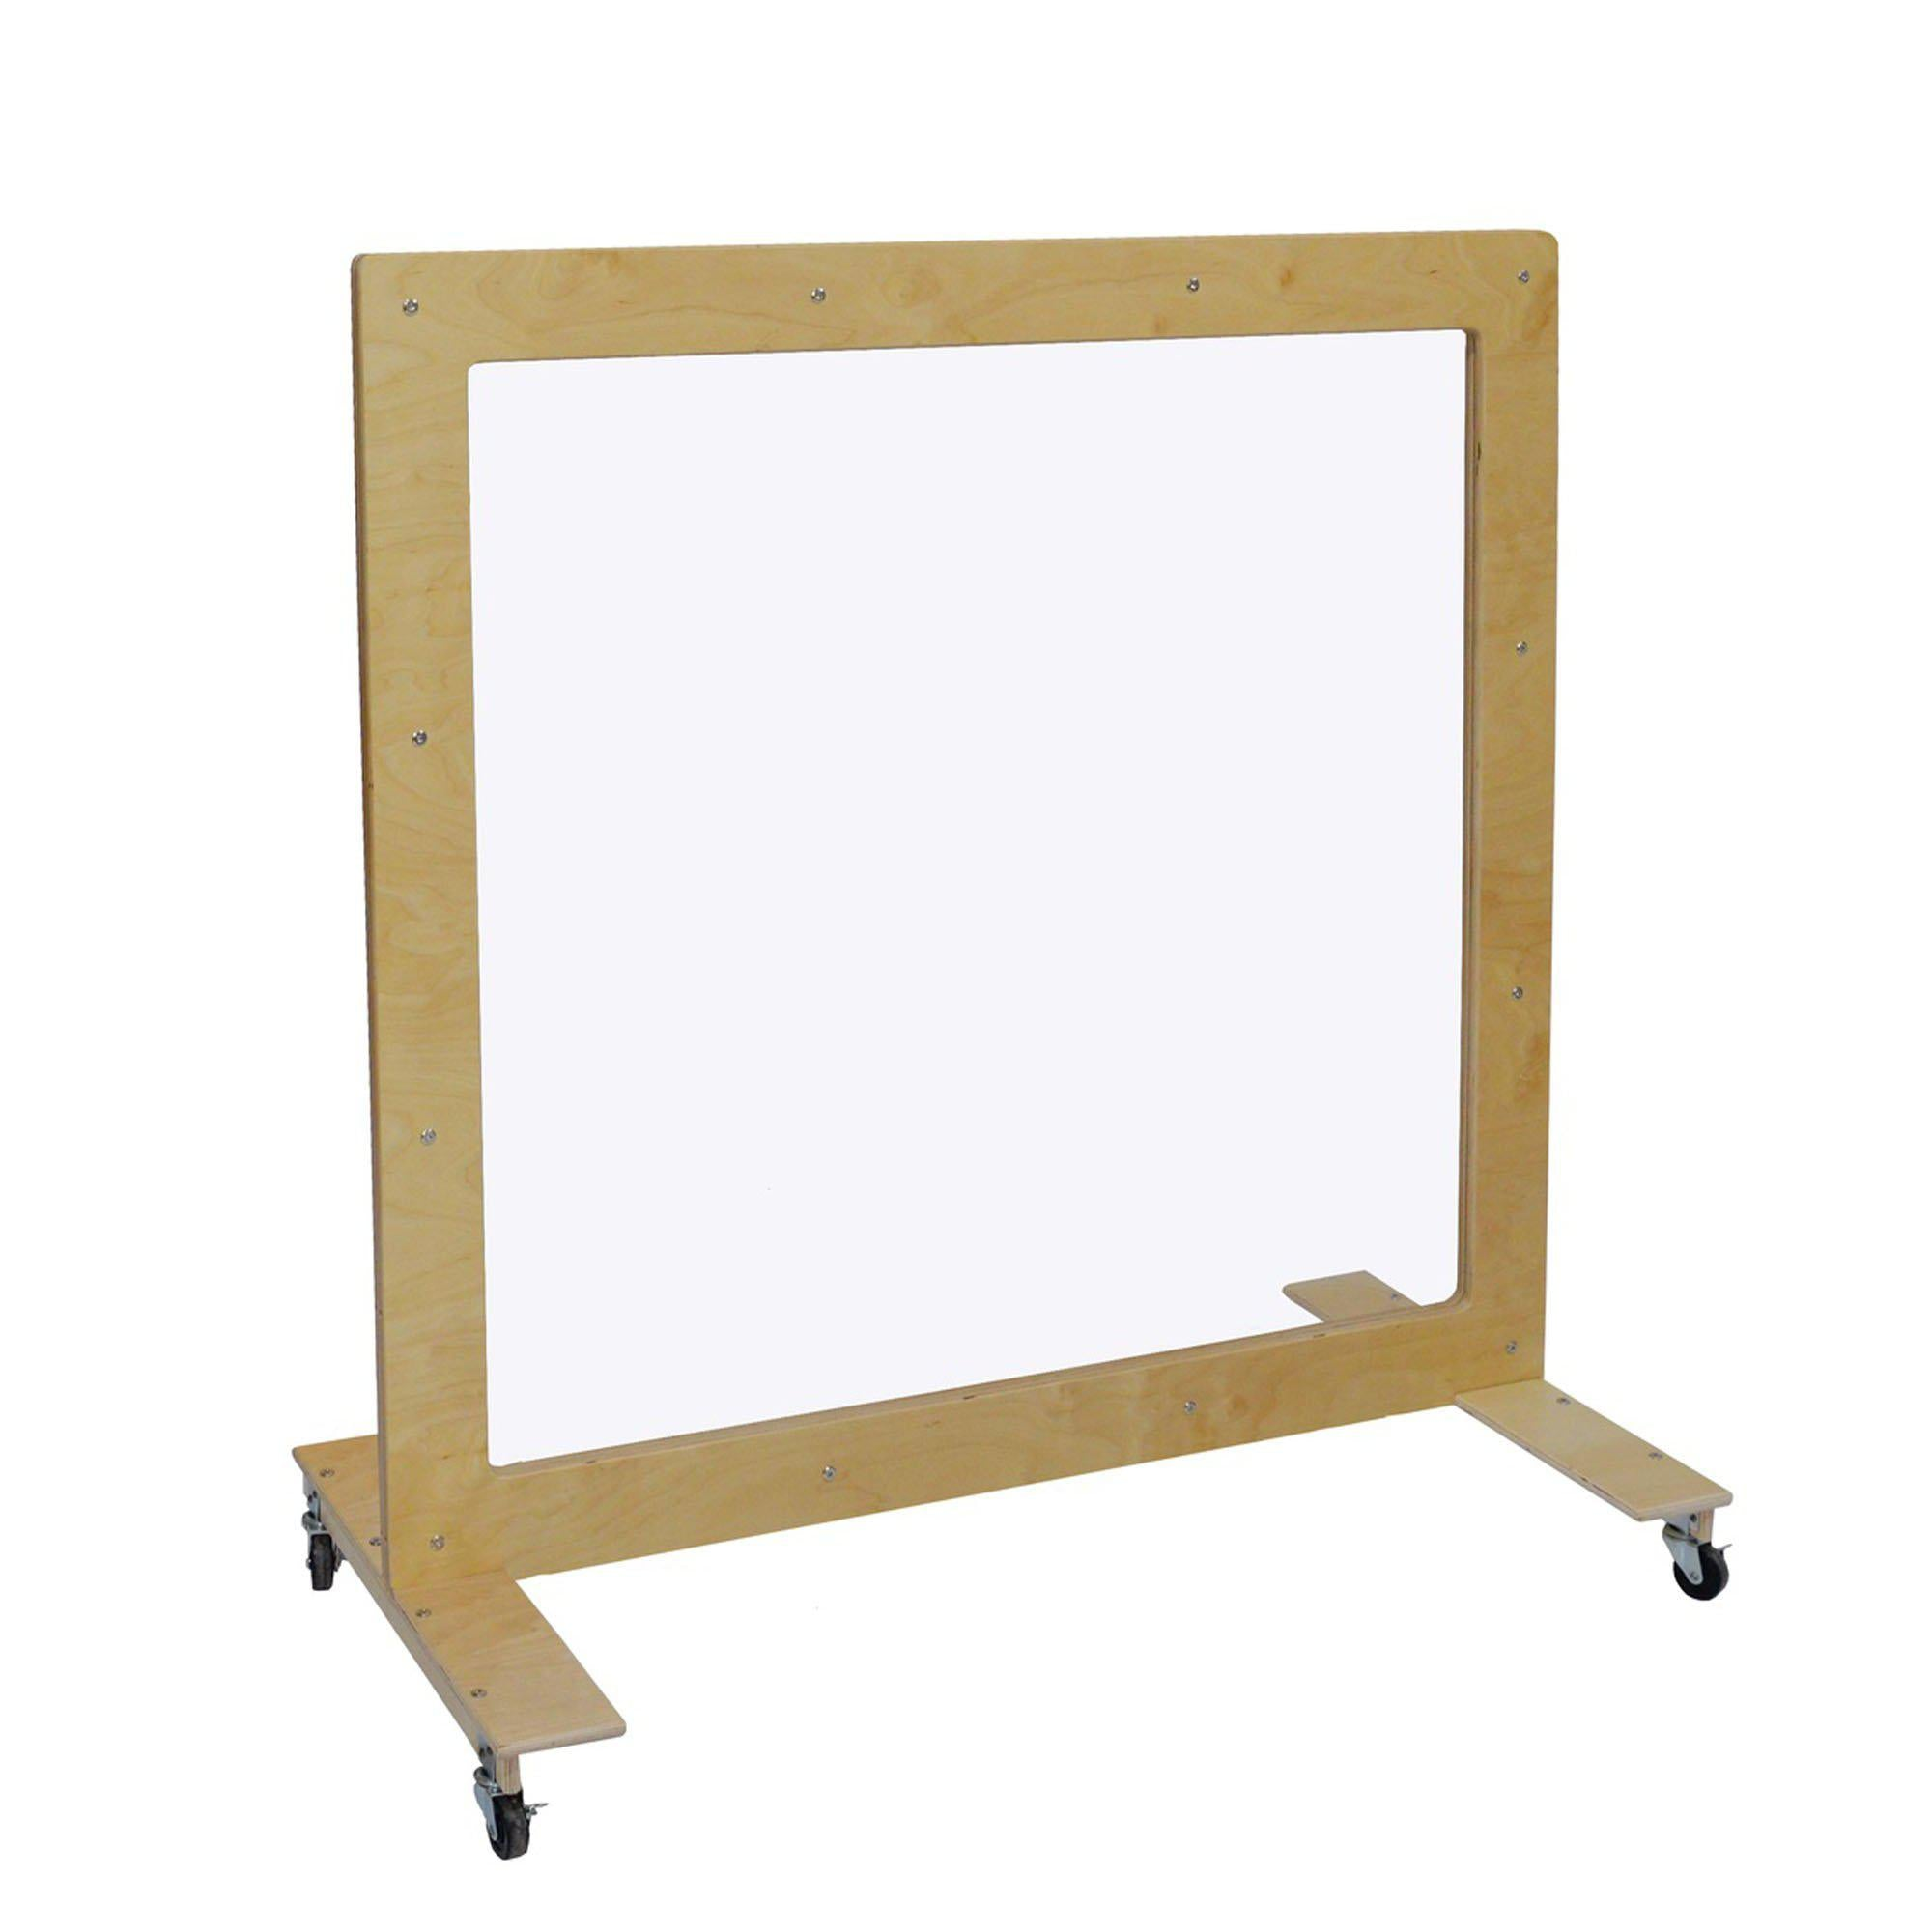 "Mobile See-Thru Room Divider, 48"" x 48"""